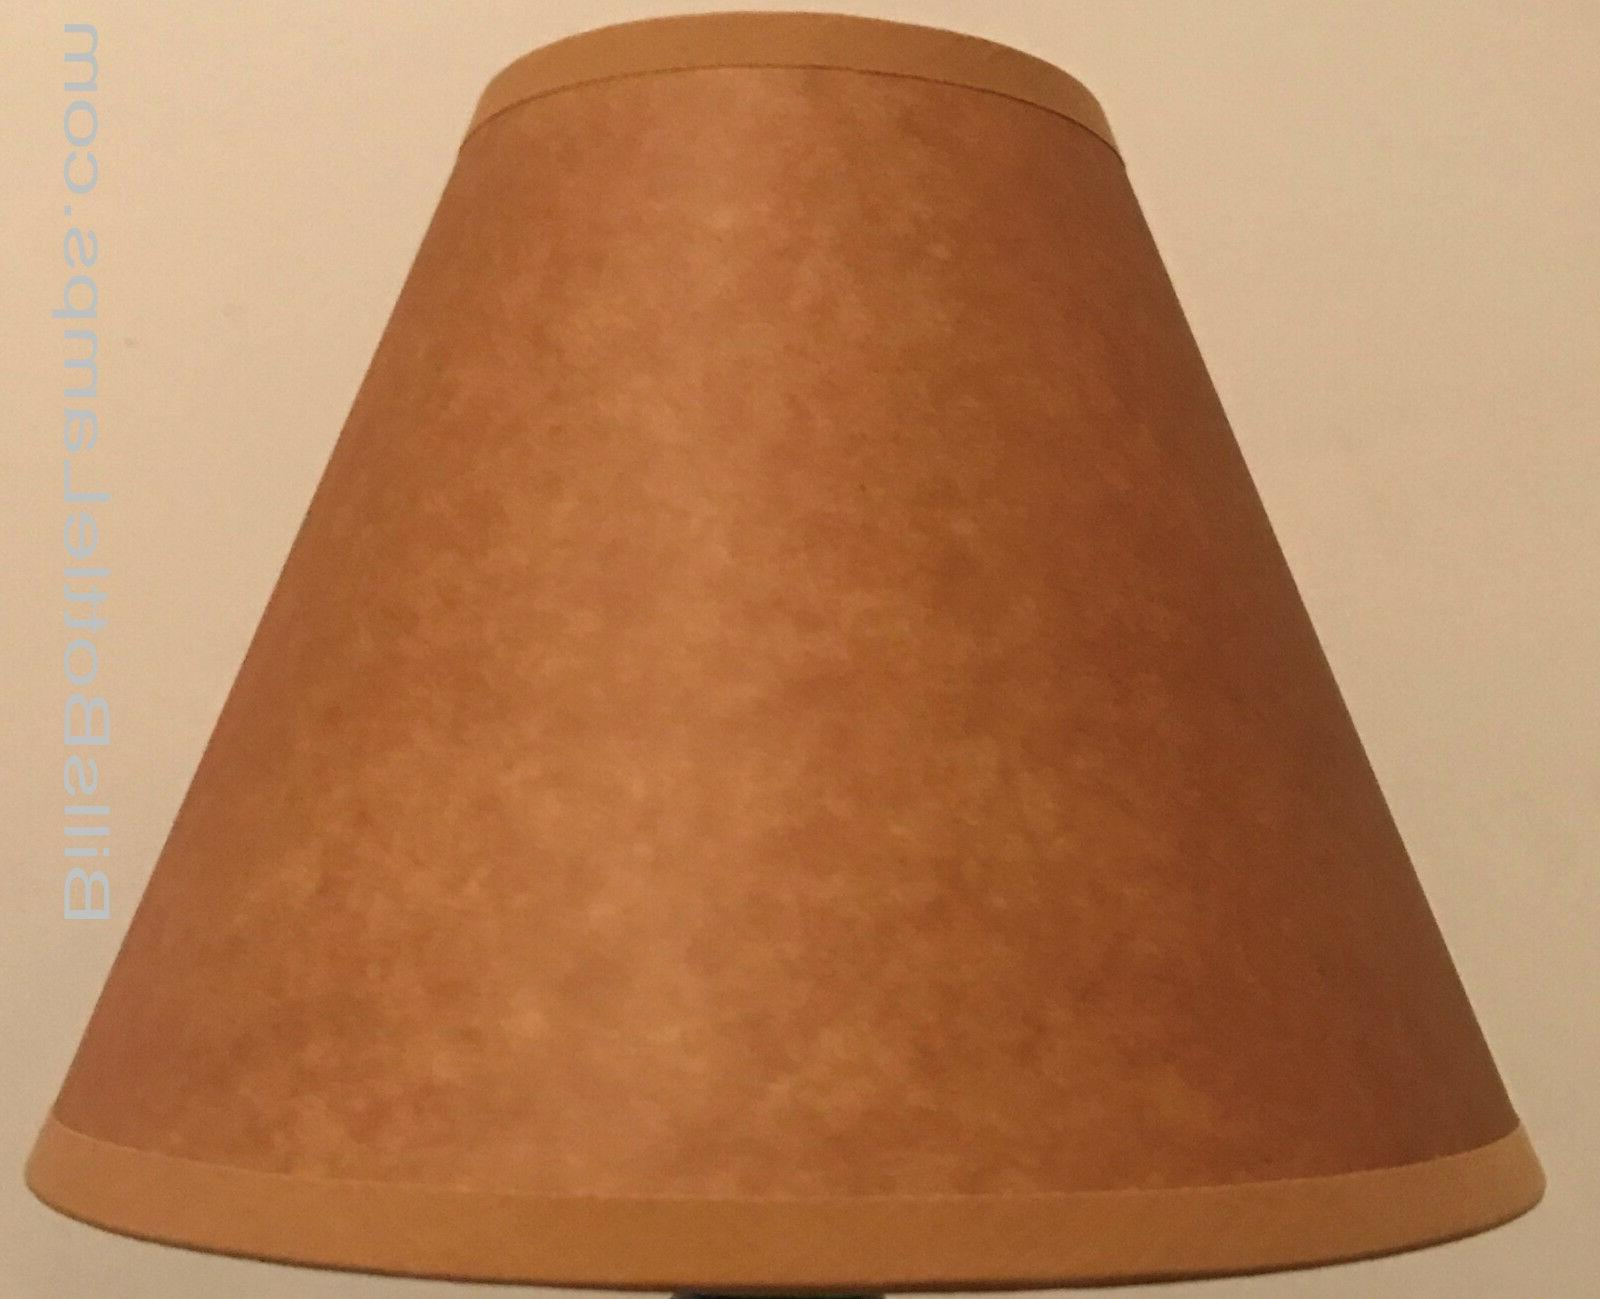 Rustic Table Light LAMP SHADE Oil Clip-On inch